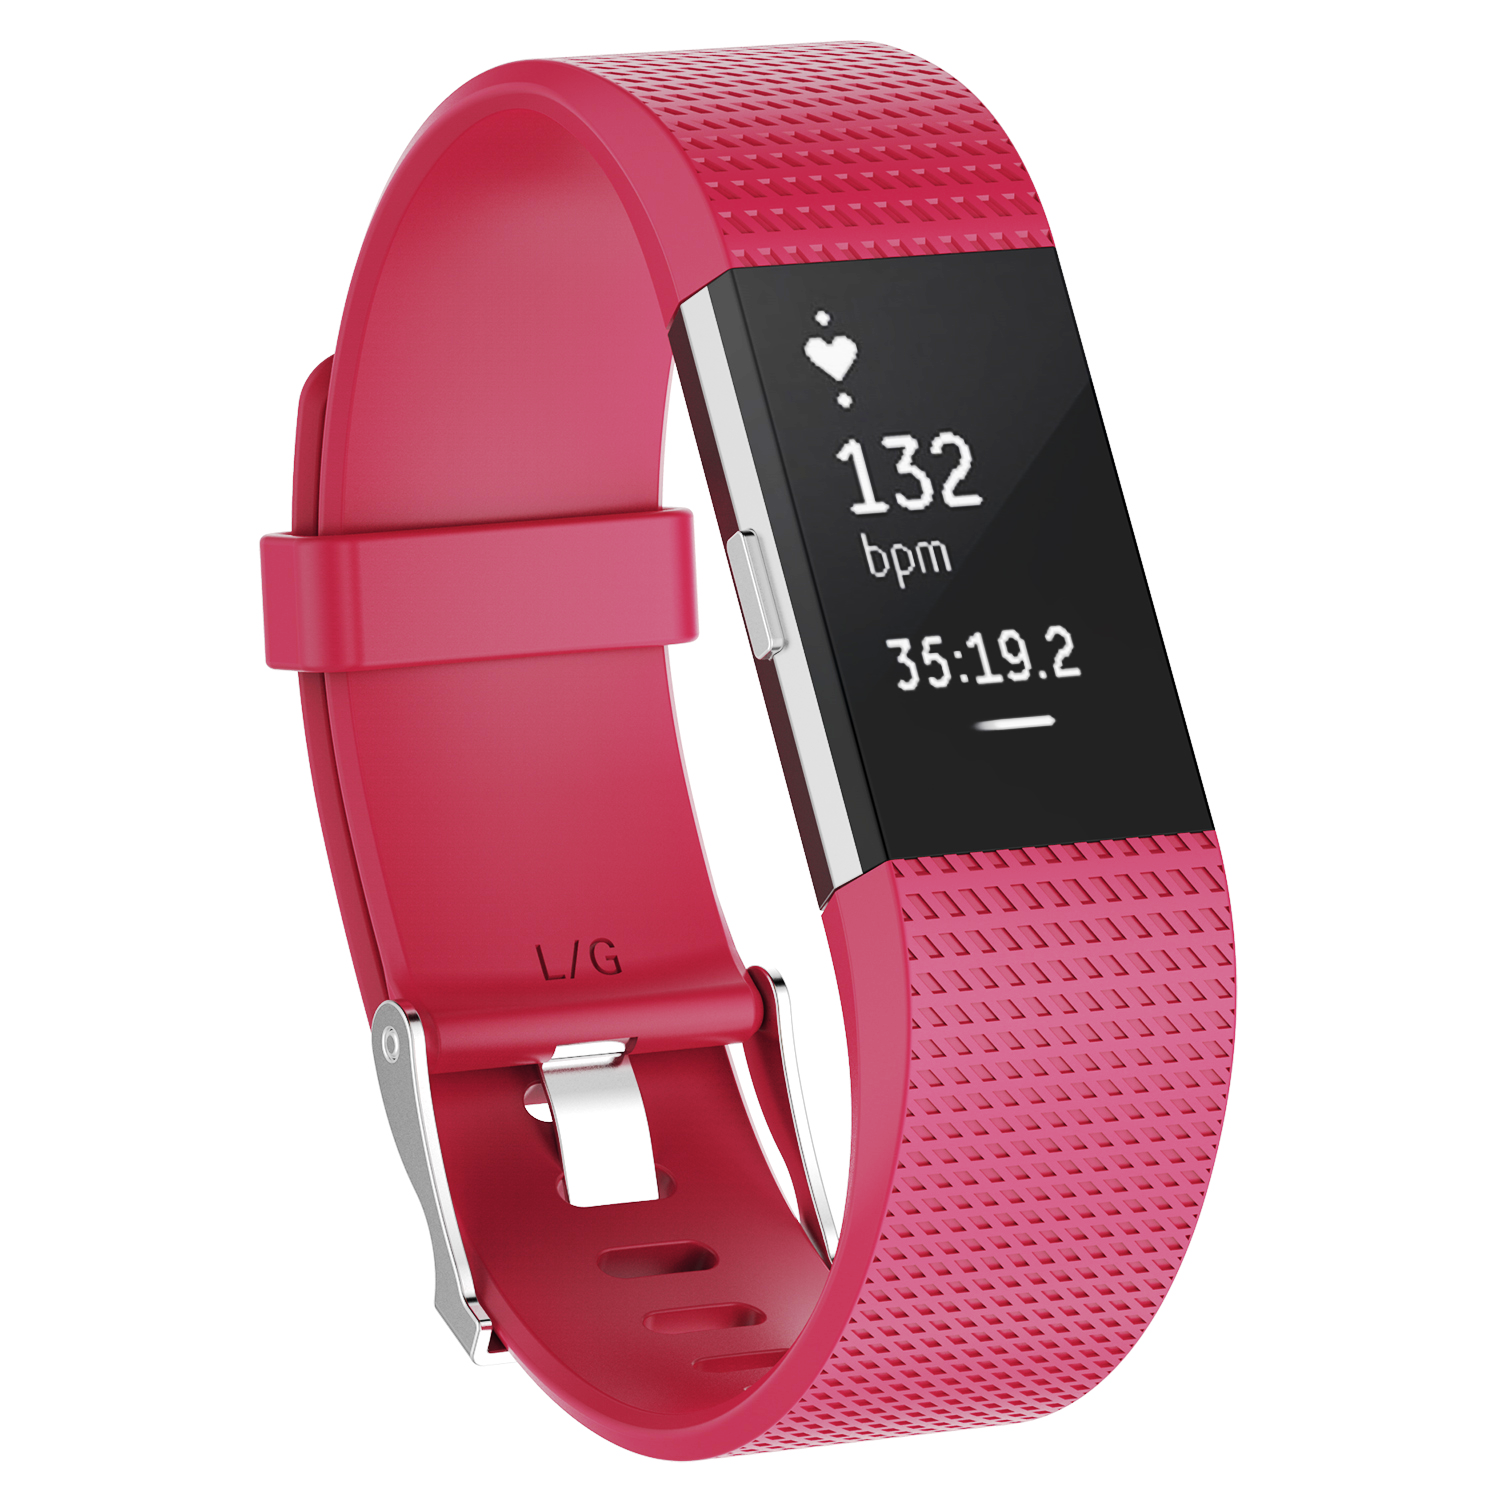 Replacement-Silicone-Wristband-Watch-Strap-Bands-Bracelet-For-Fitbit-Charge-2 thumbnail 45